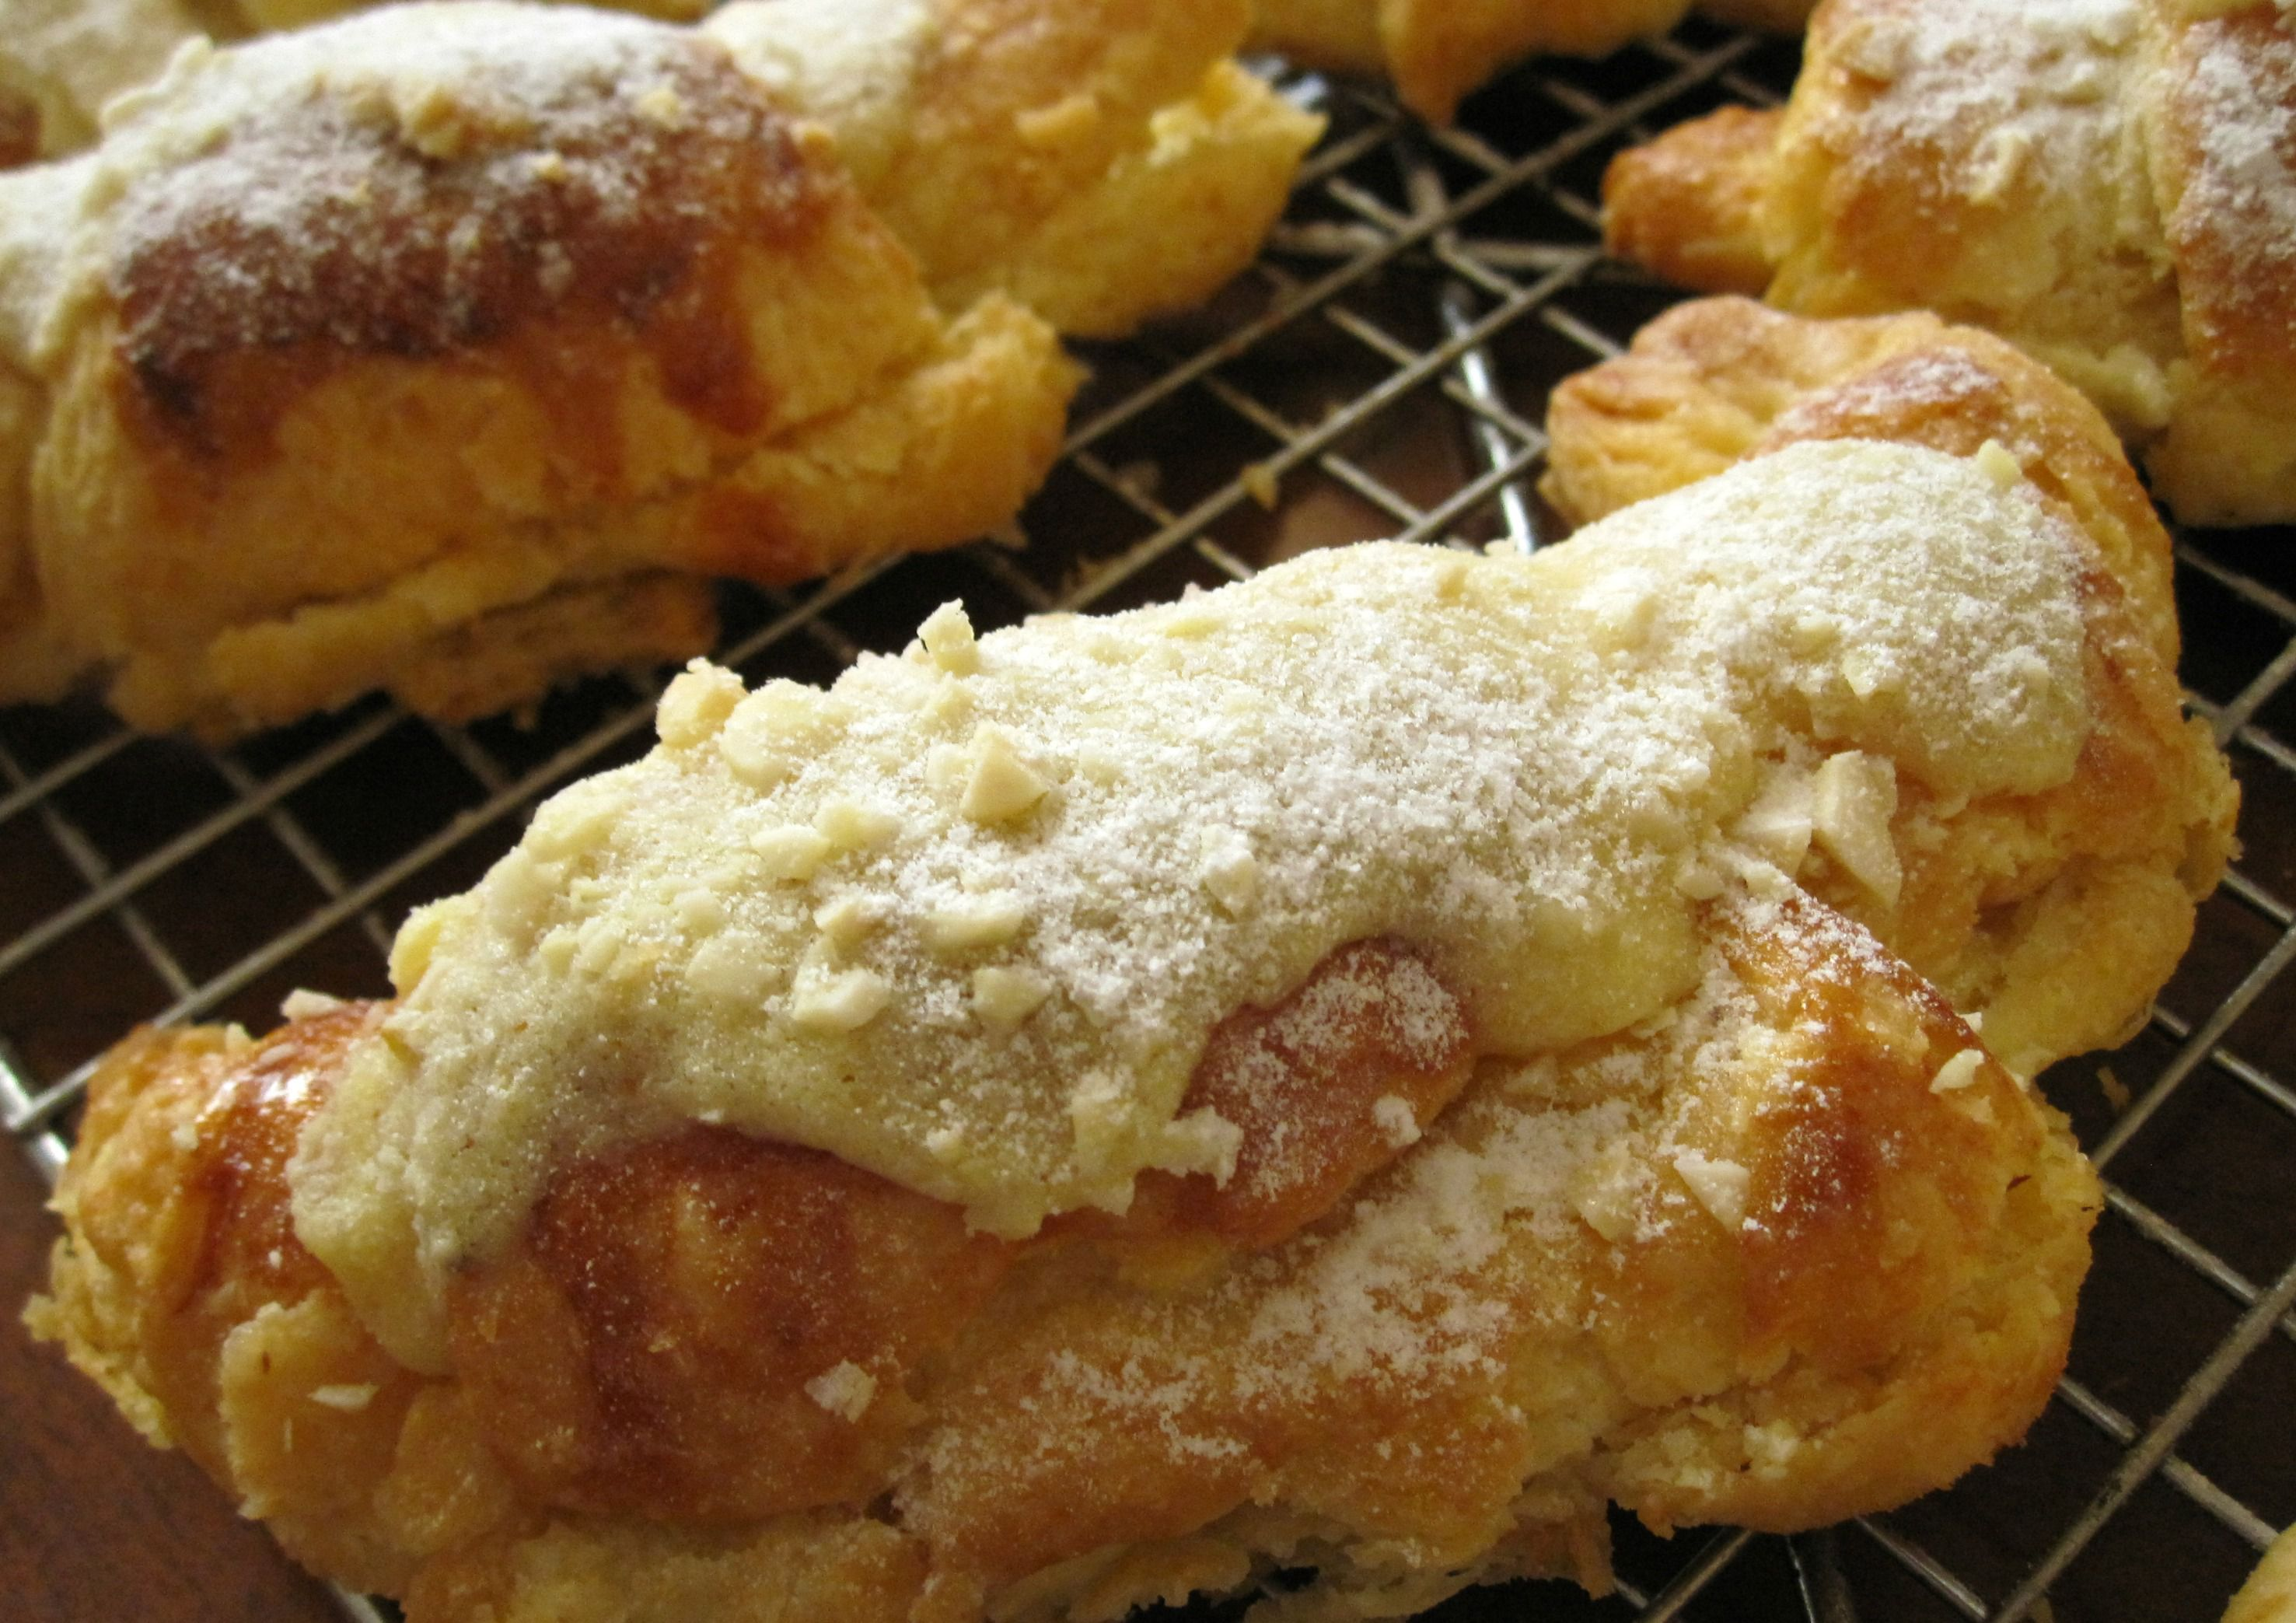 Make Almond Croissants (Croissants aux Amandes) the Traditional Way